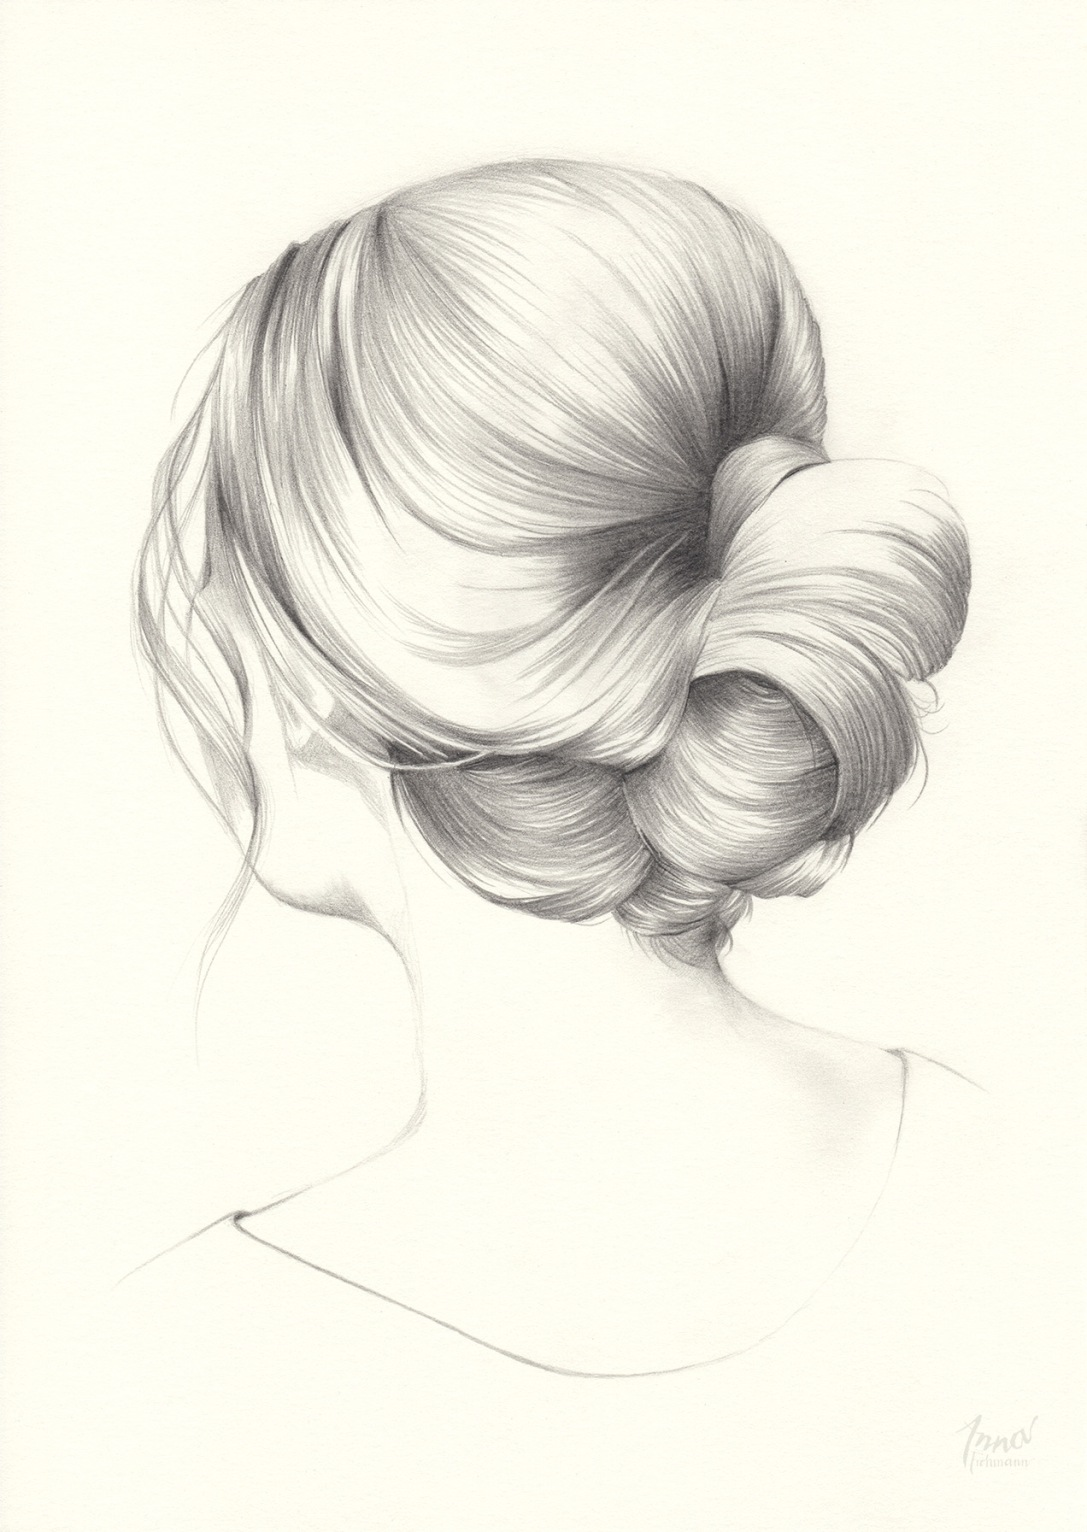 GIRL II | pencil on paper